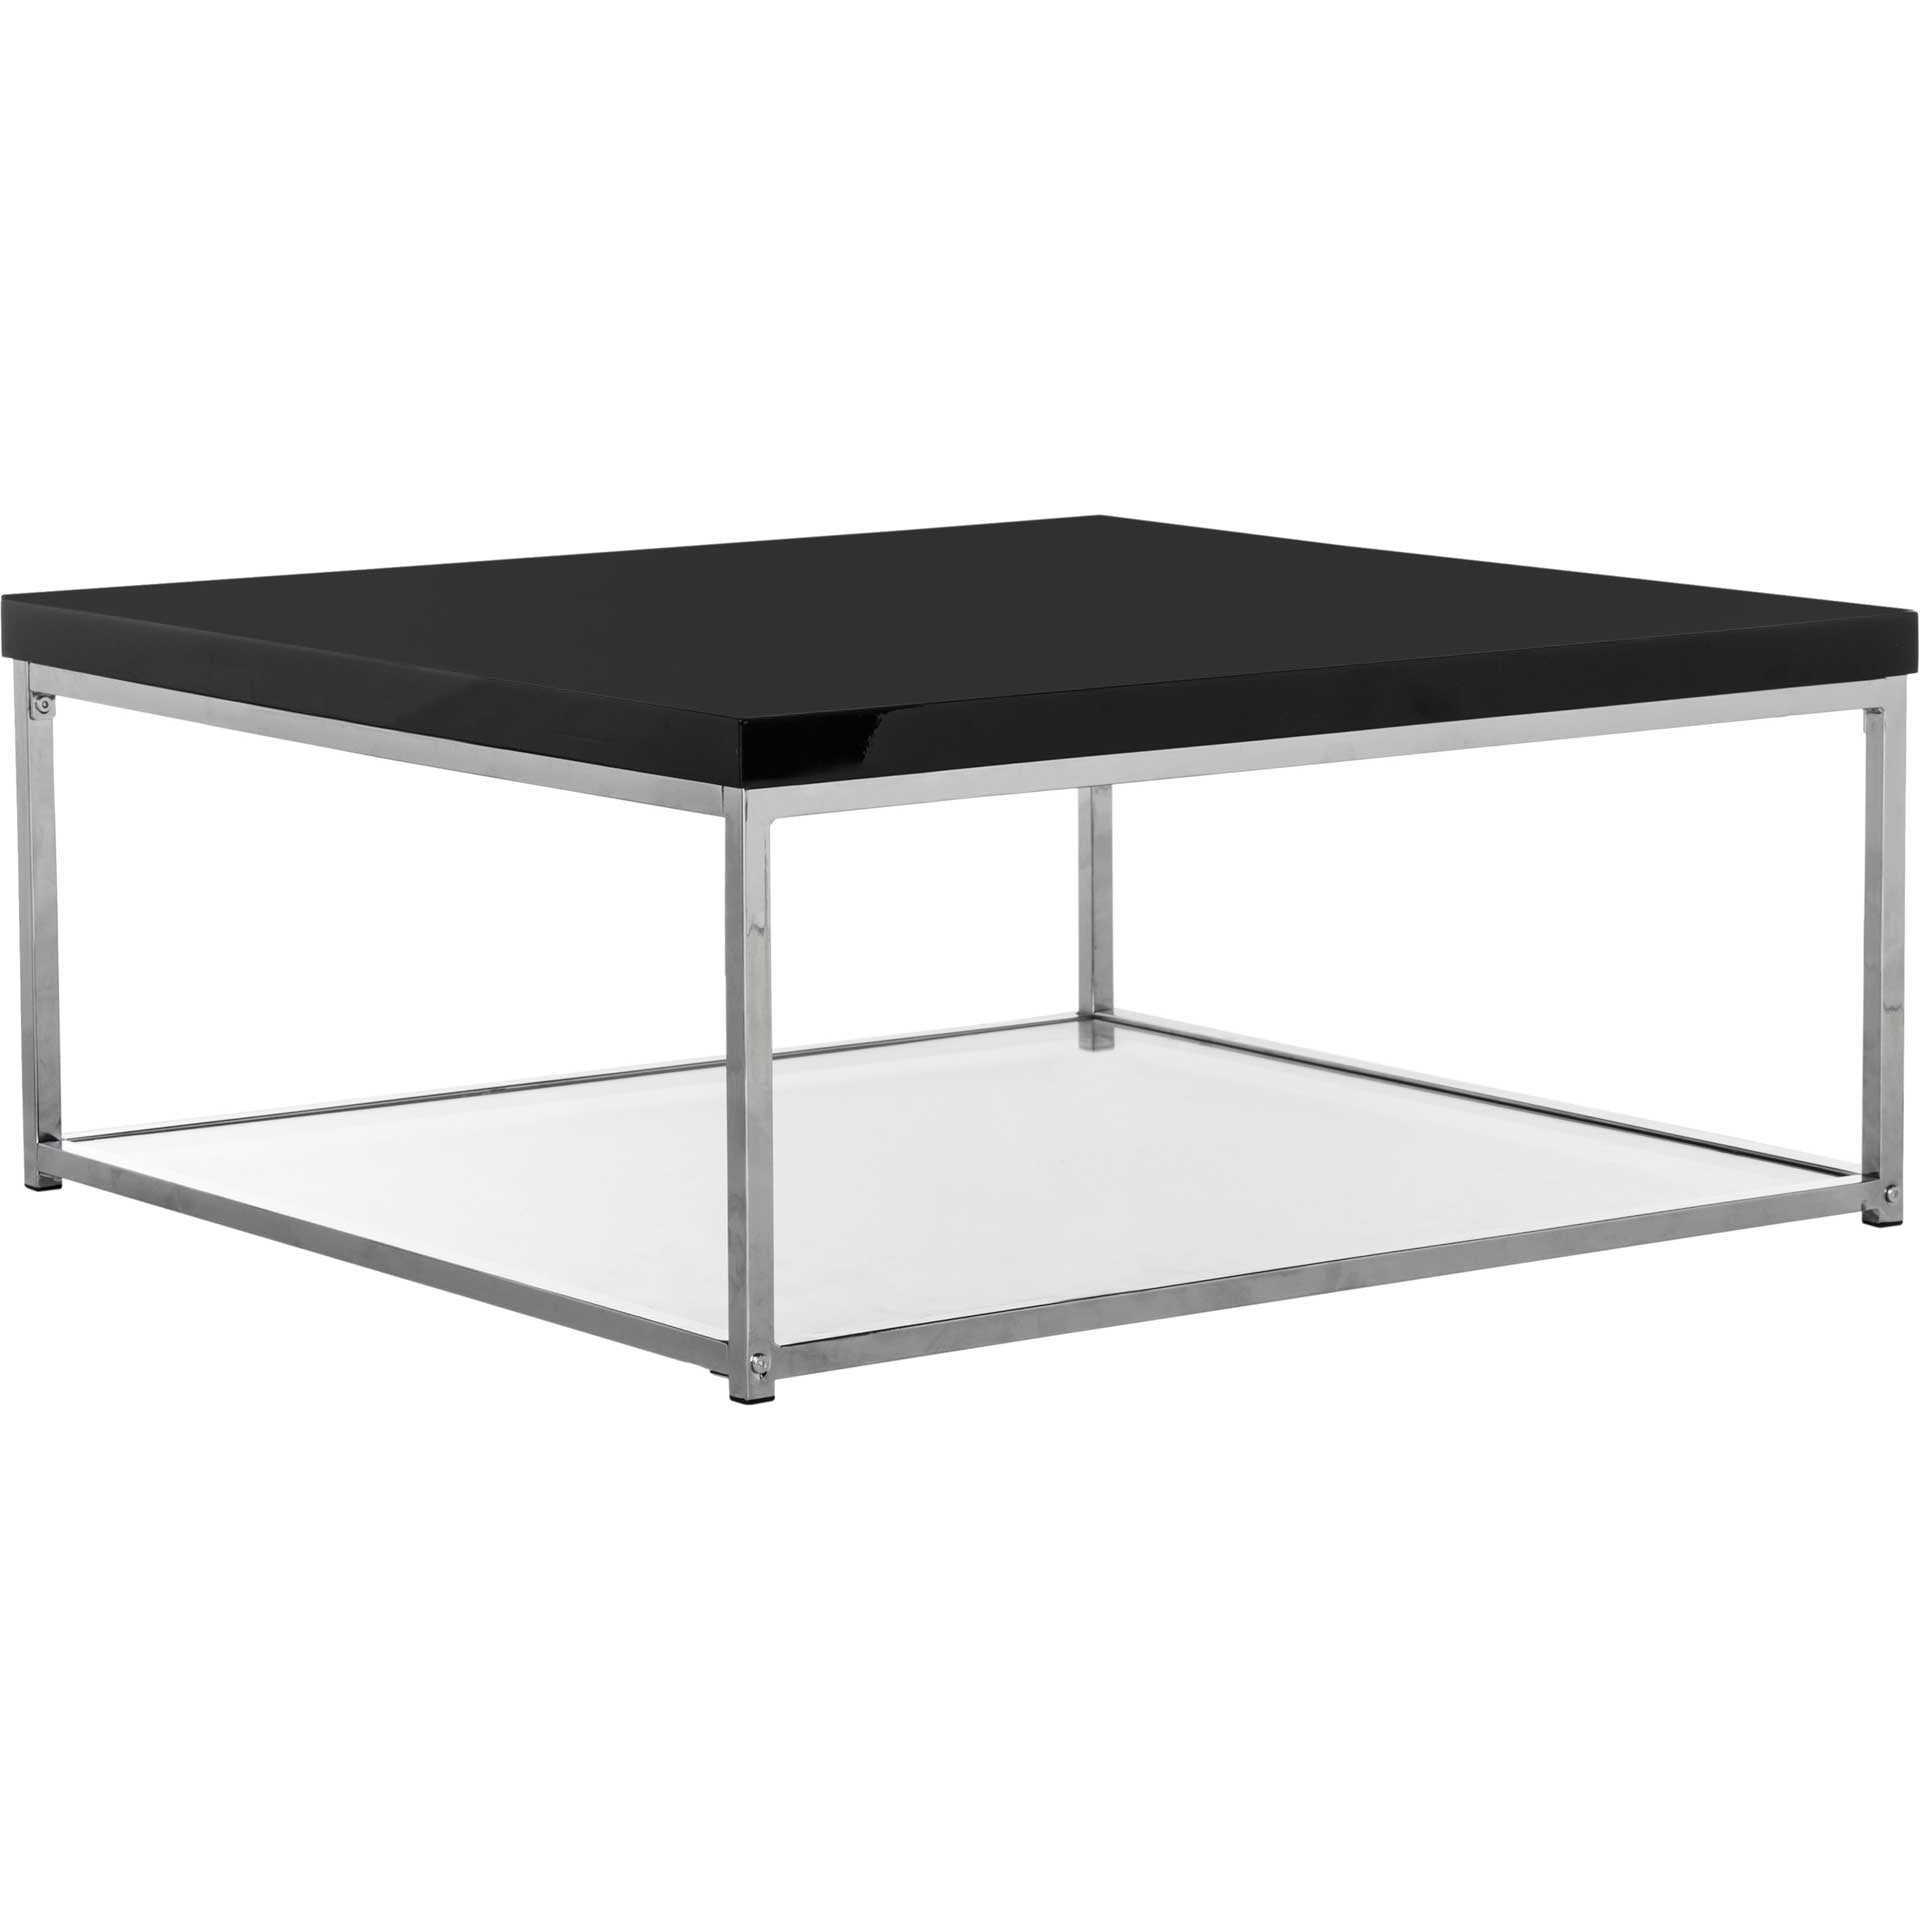 Mark Chrome High Gloss Coffee Table Black/Chrome